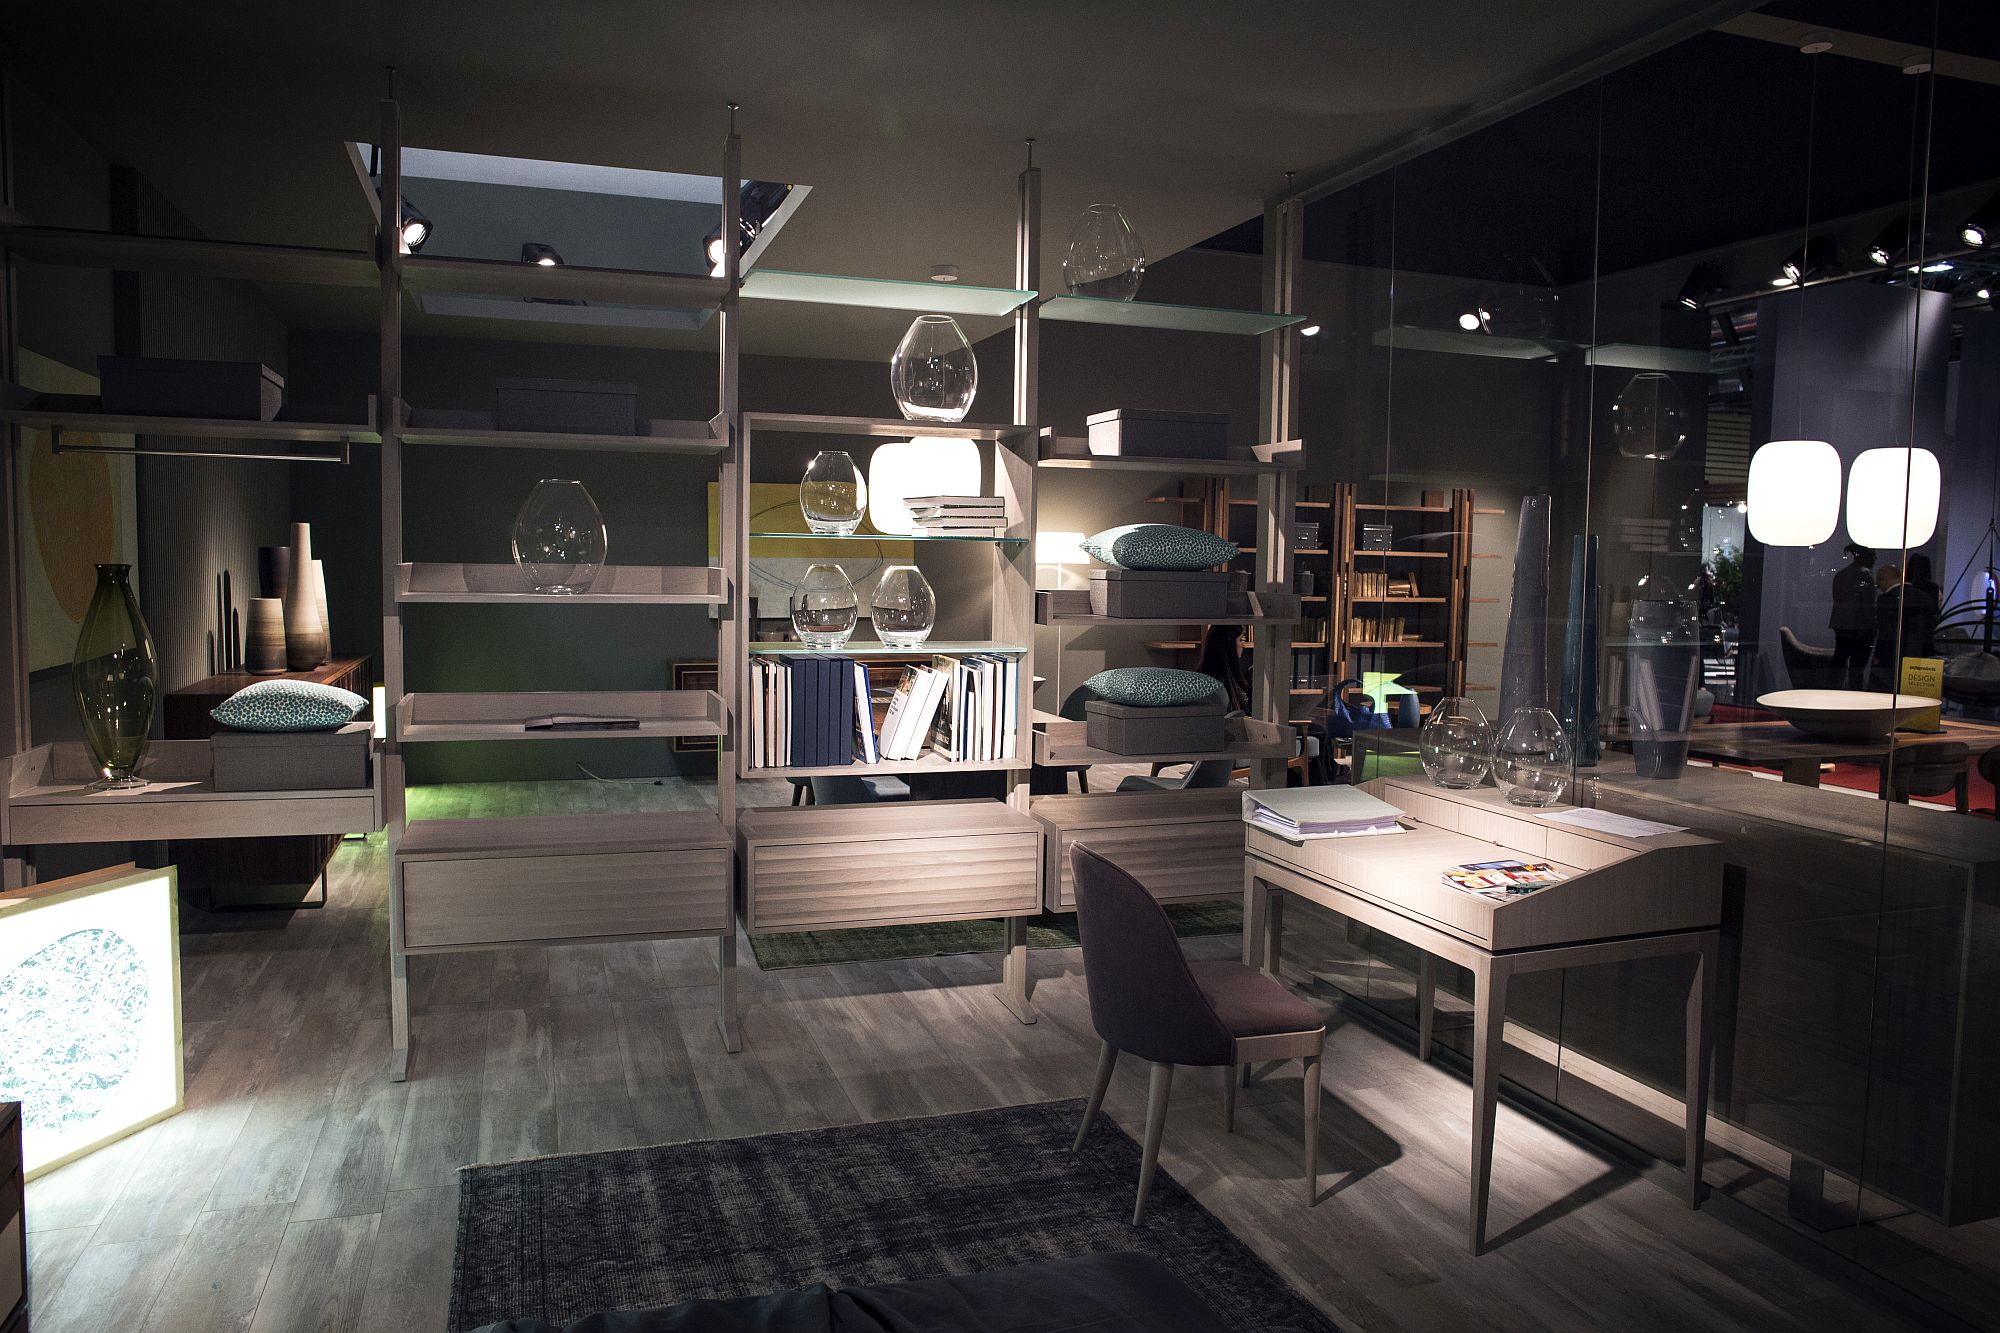 Shelves-act-as-room-dividers-while-the-desk-provides-a-space-savvy-workspace